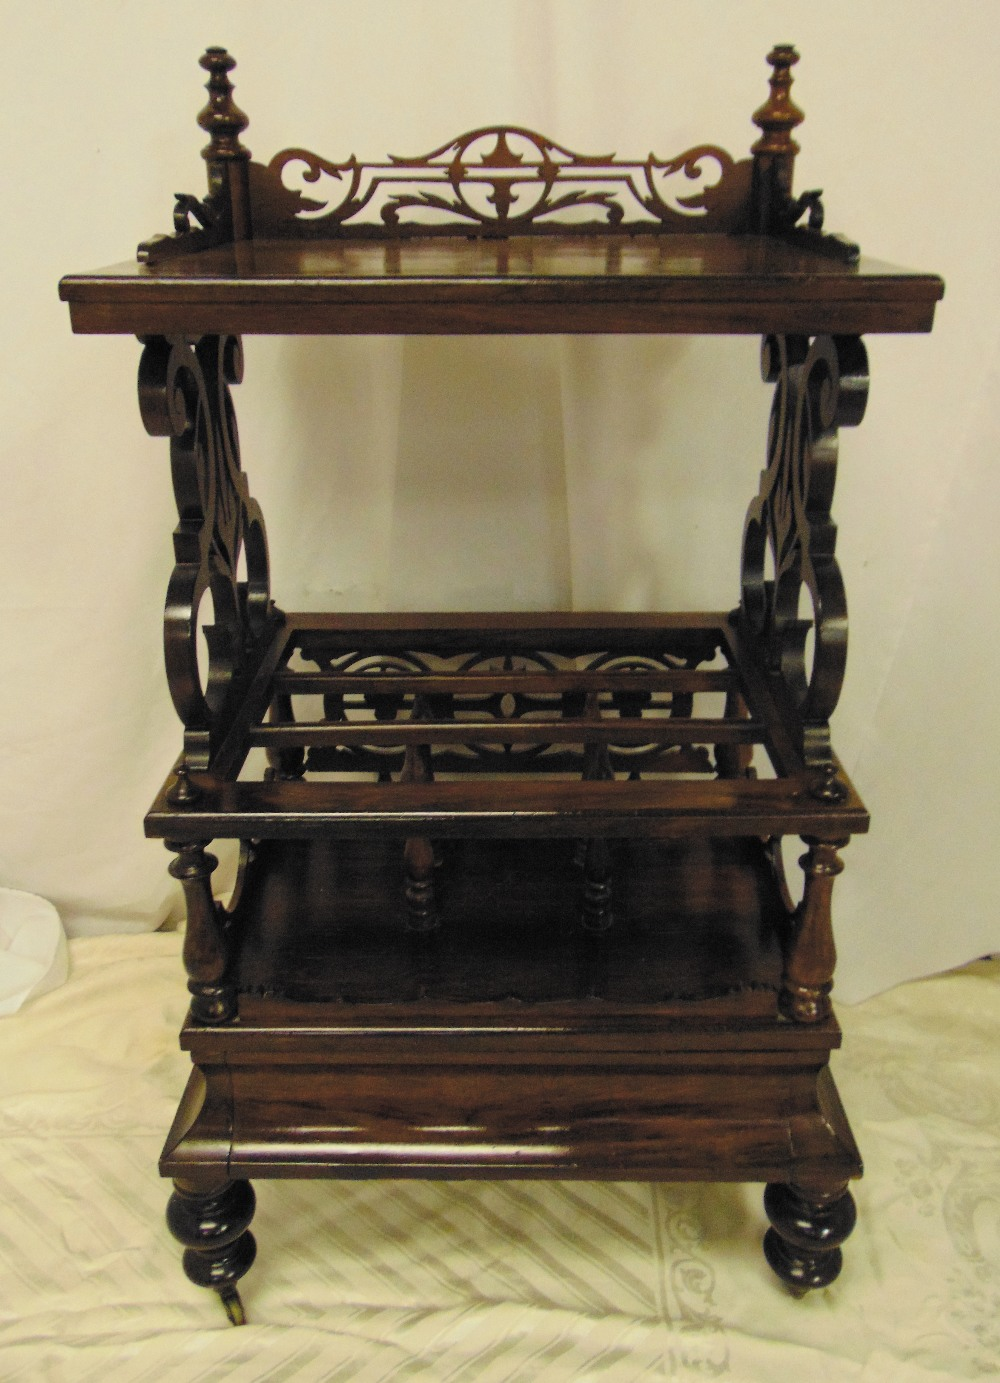 Lot 2 - A Victorian mahogany rectangular whatnot cum magazine rack with pierced scroll sides on four bun